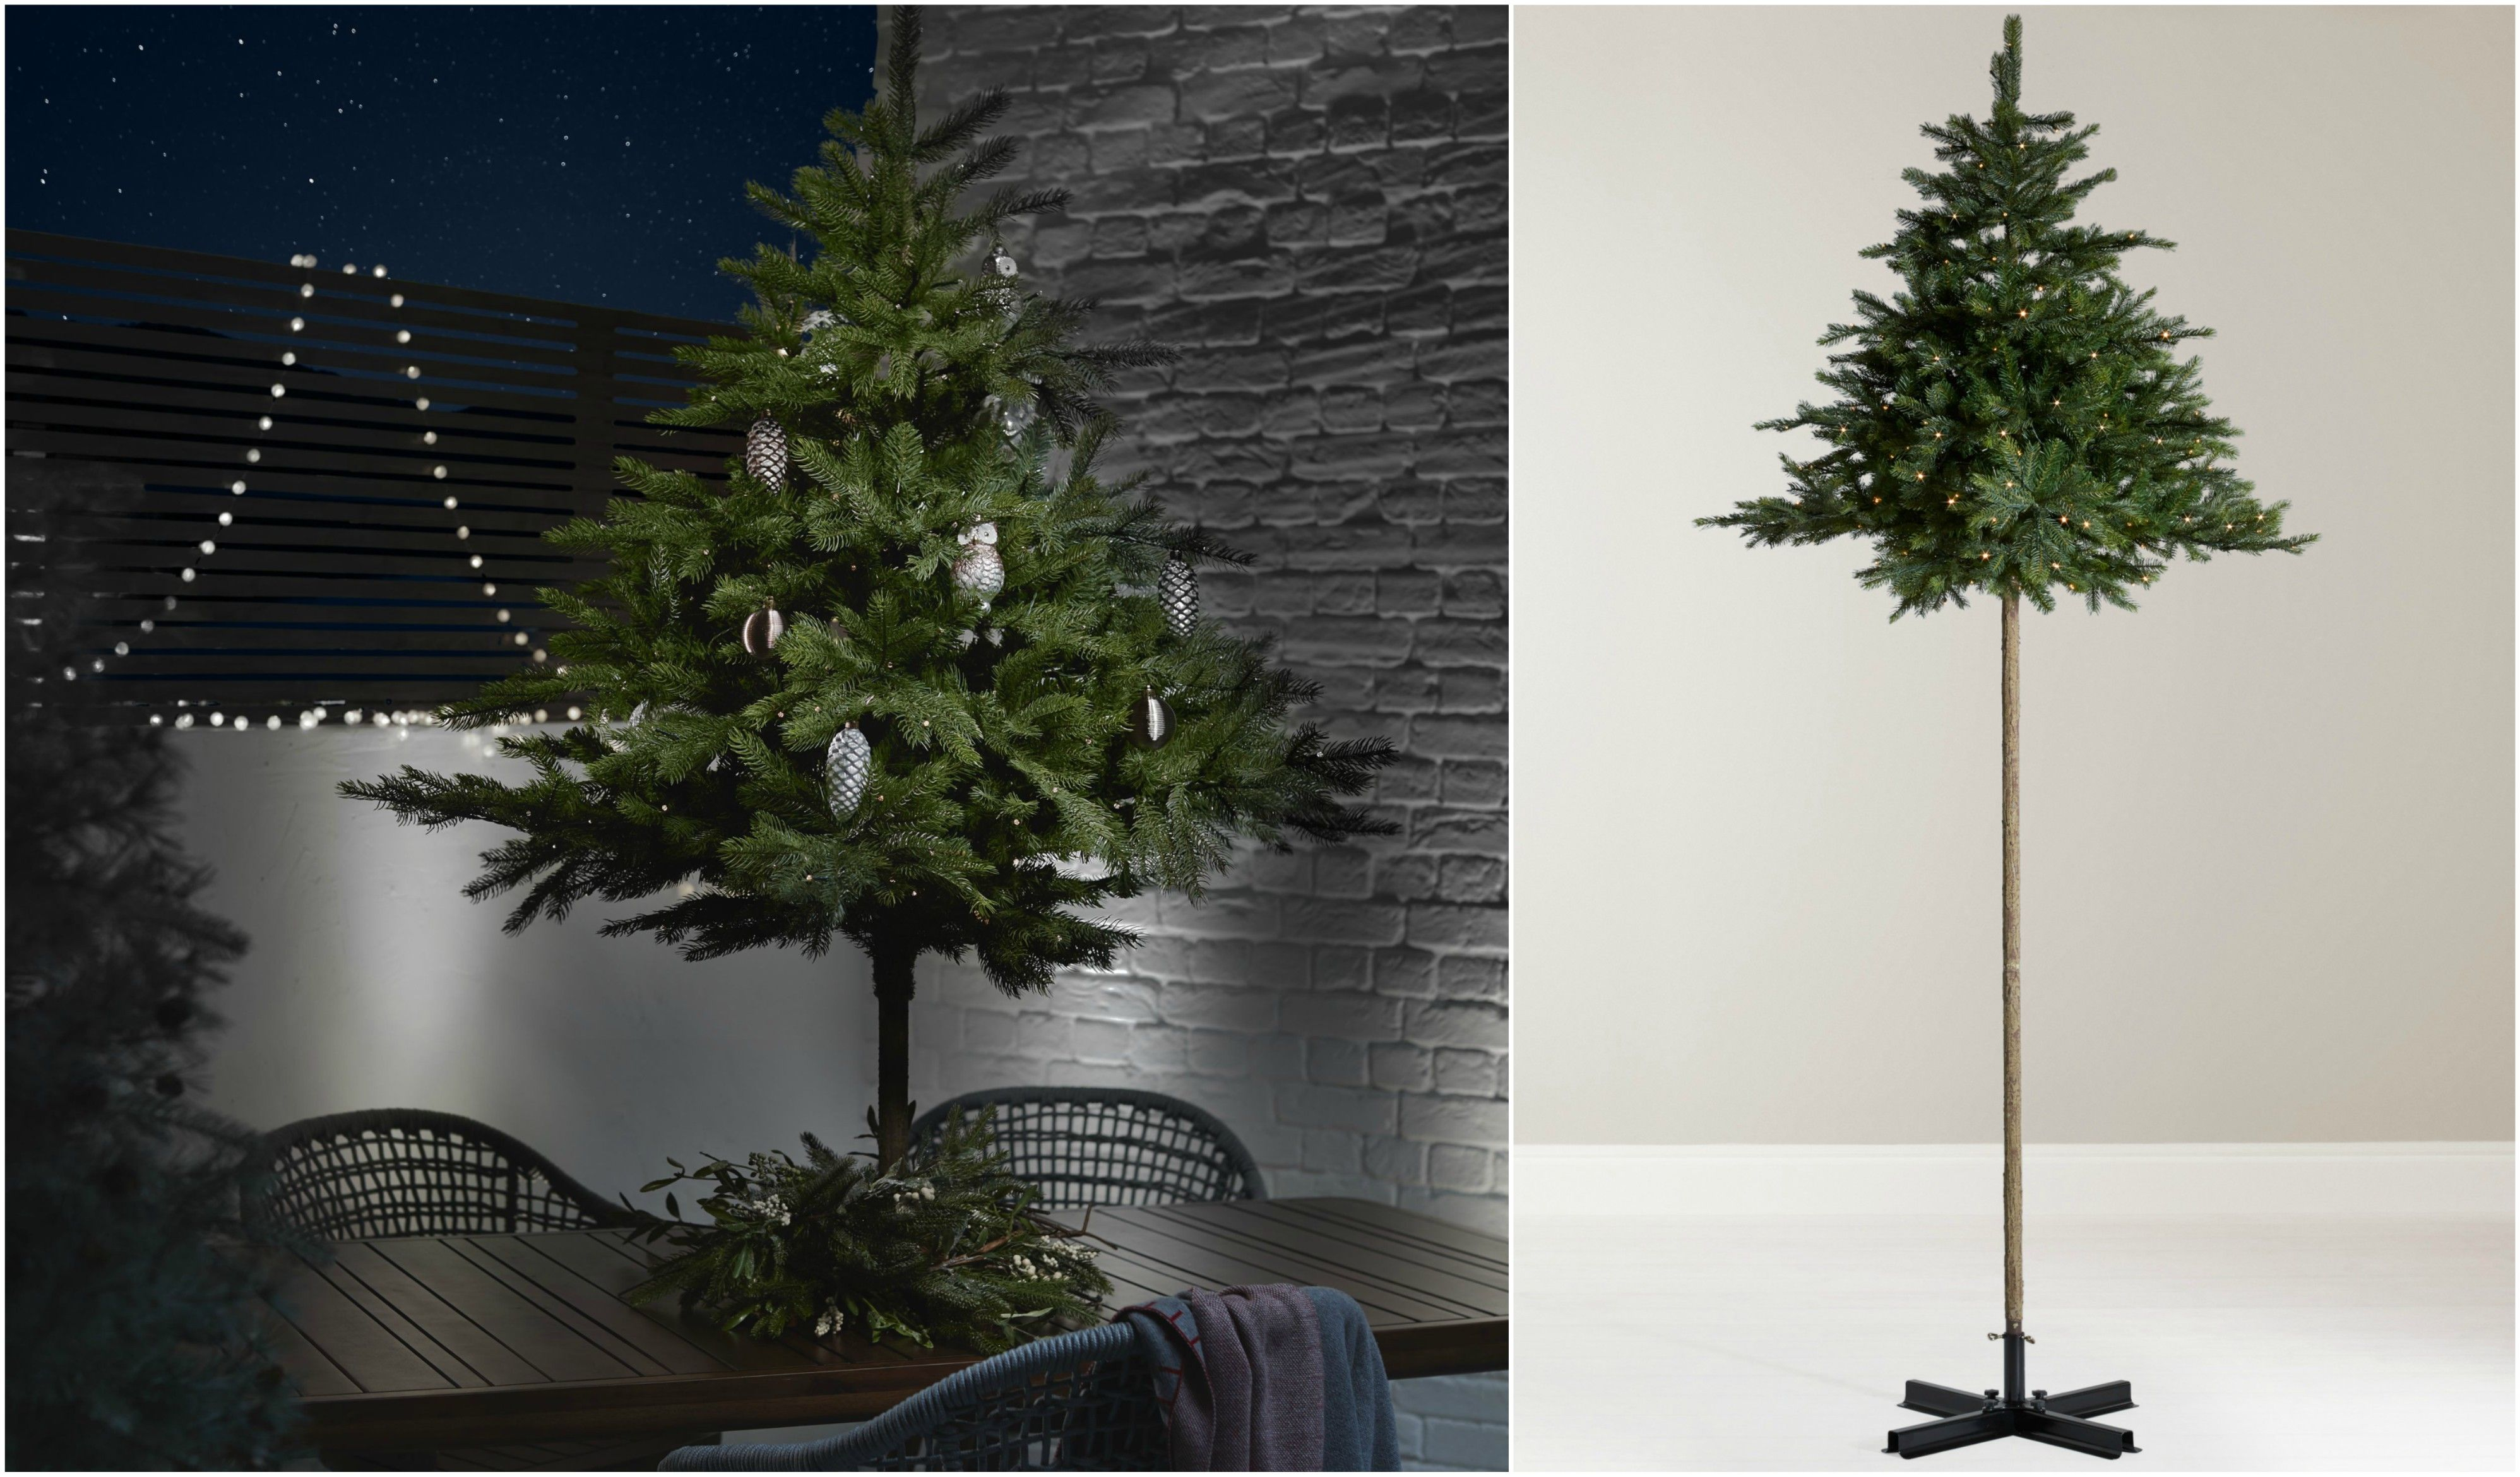 John Lewis Christmas Tree.John Lewis Is Selling A Pre Lit Outdoor Parasol Christmas